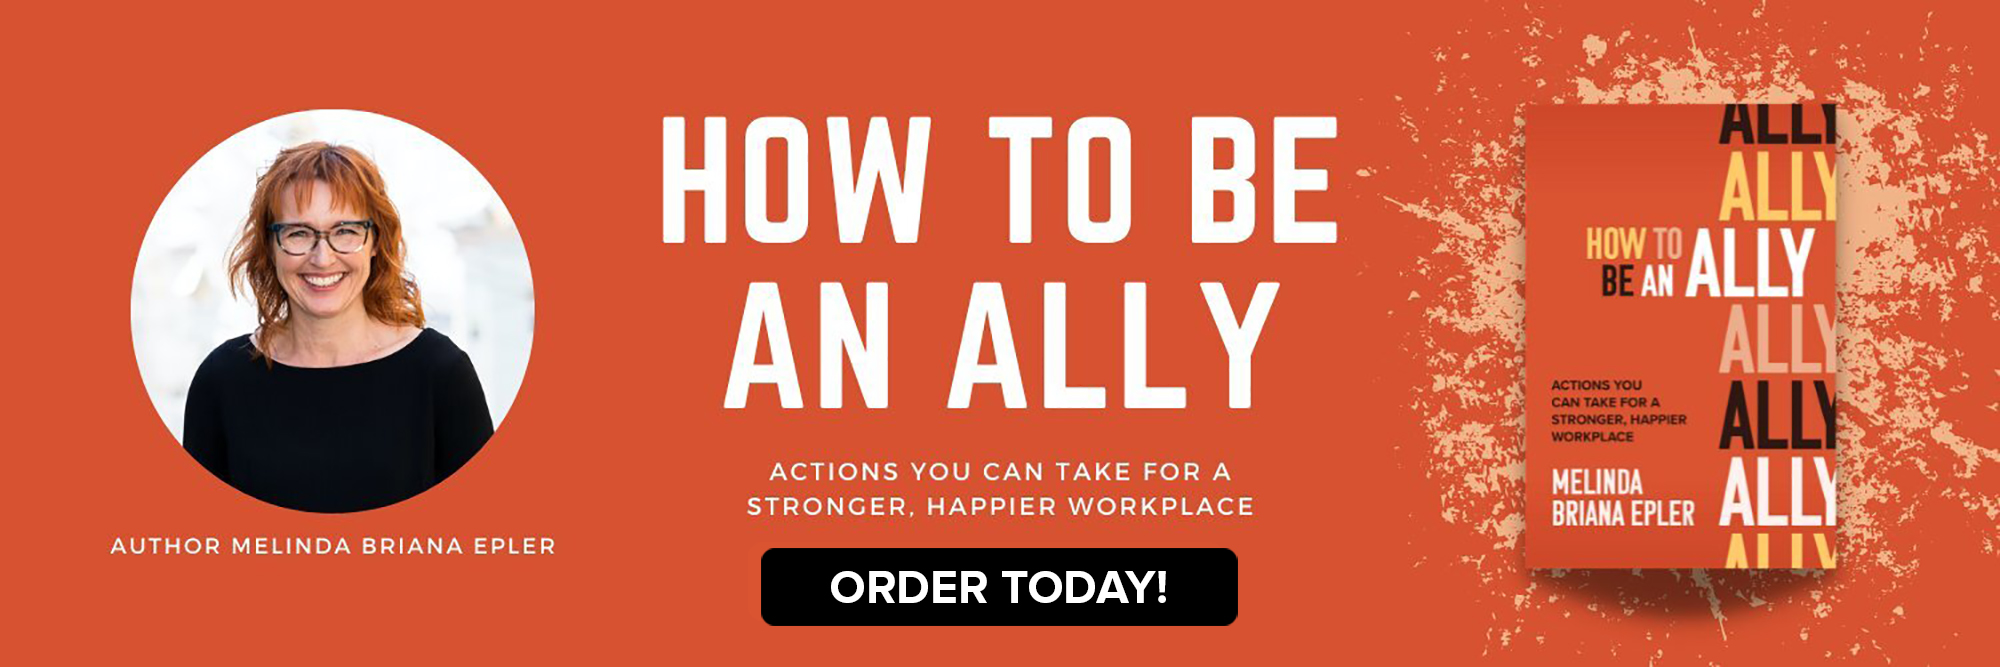 How To Be An Ally Book cover by Author Melinda Briana Epler Pre-Order